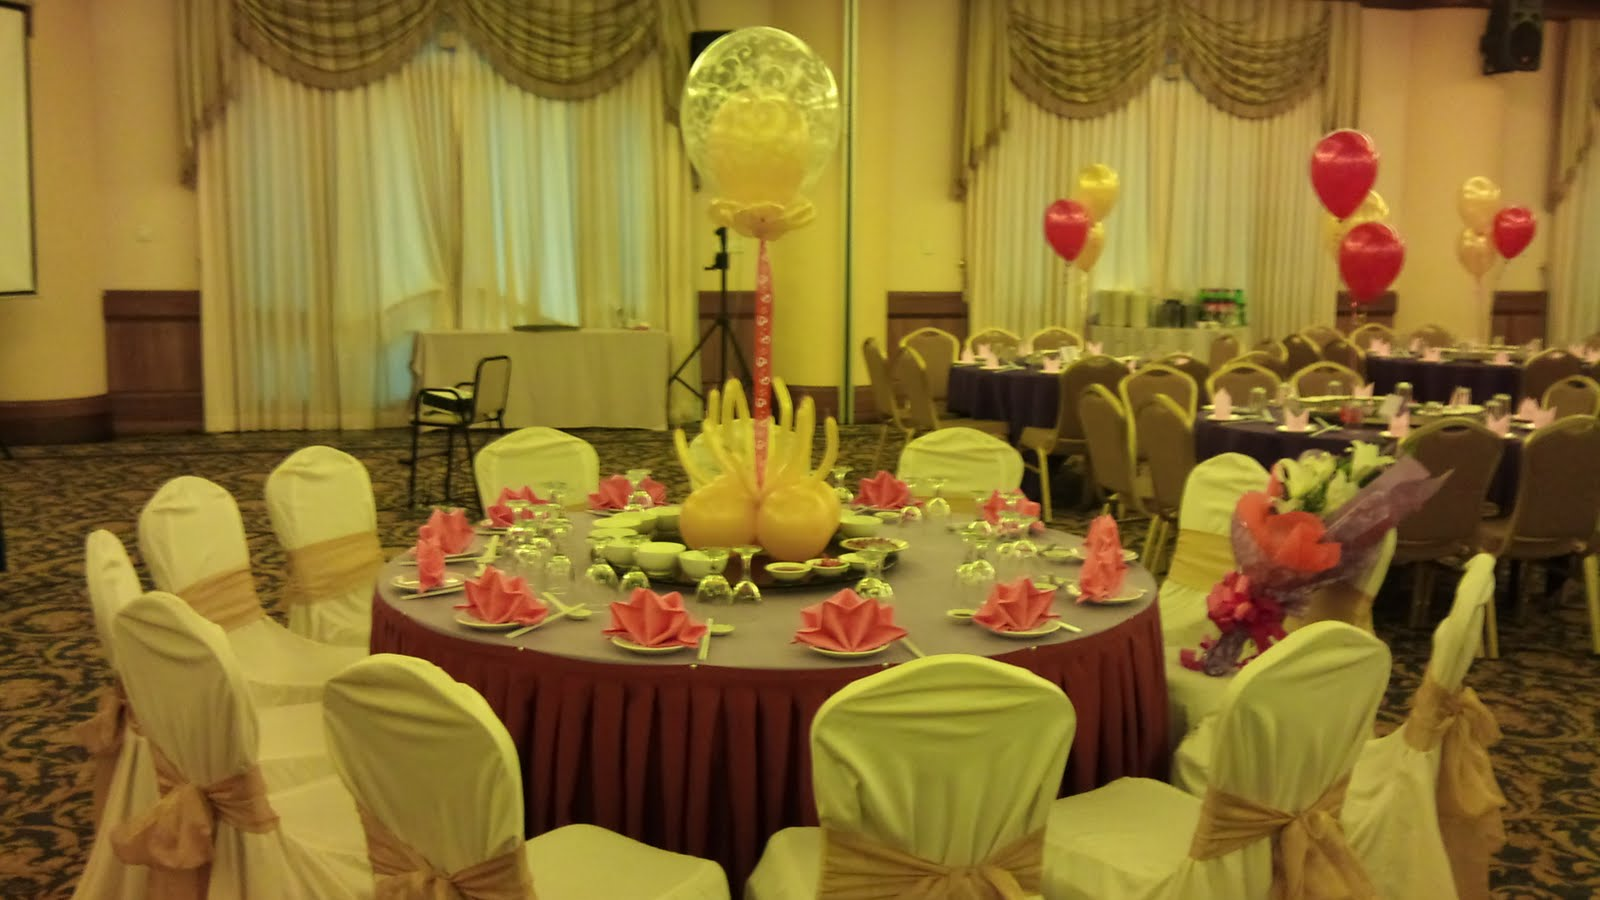 70th Birthday Decorations: Balloon Decorations For Weddings, Birthday Parties